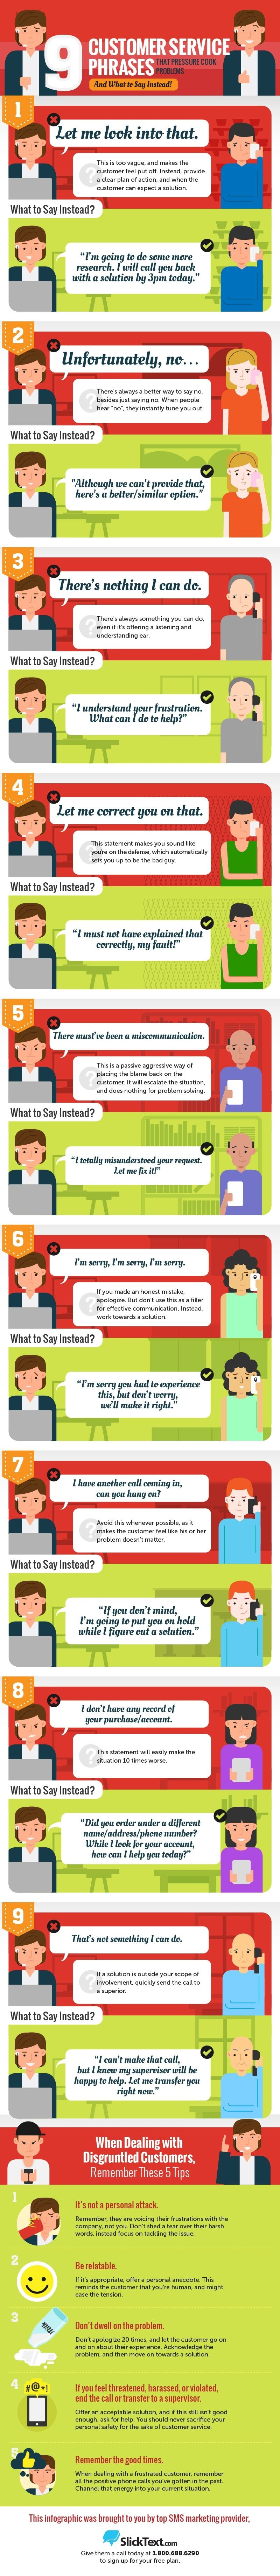 9 Deadly Customer Service Phrases to Avoid, via @HubSpot | Marketing ...